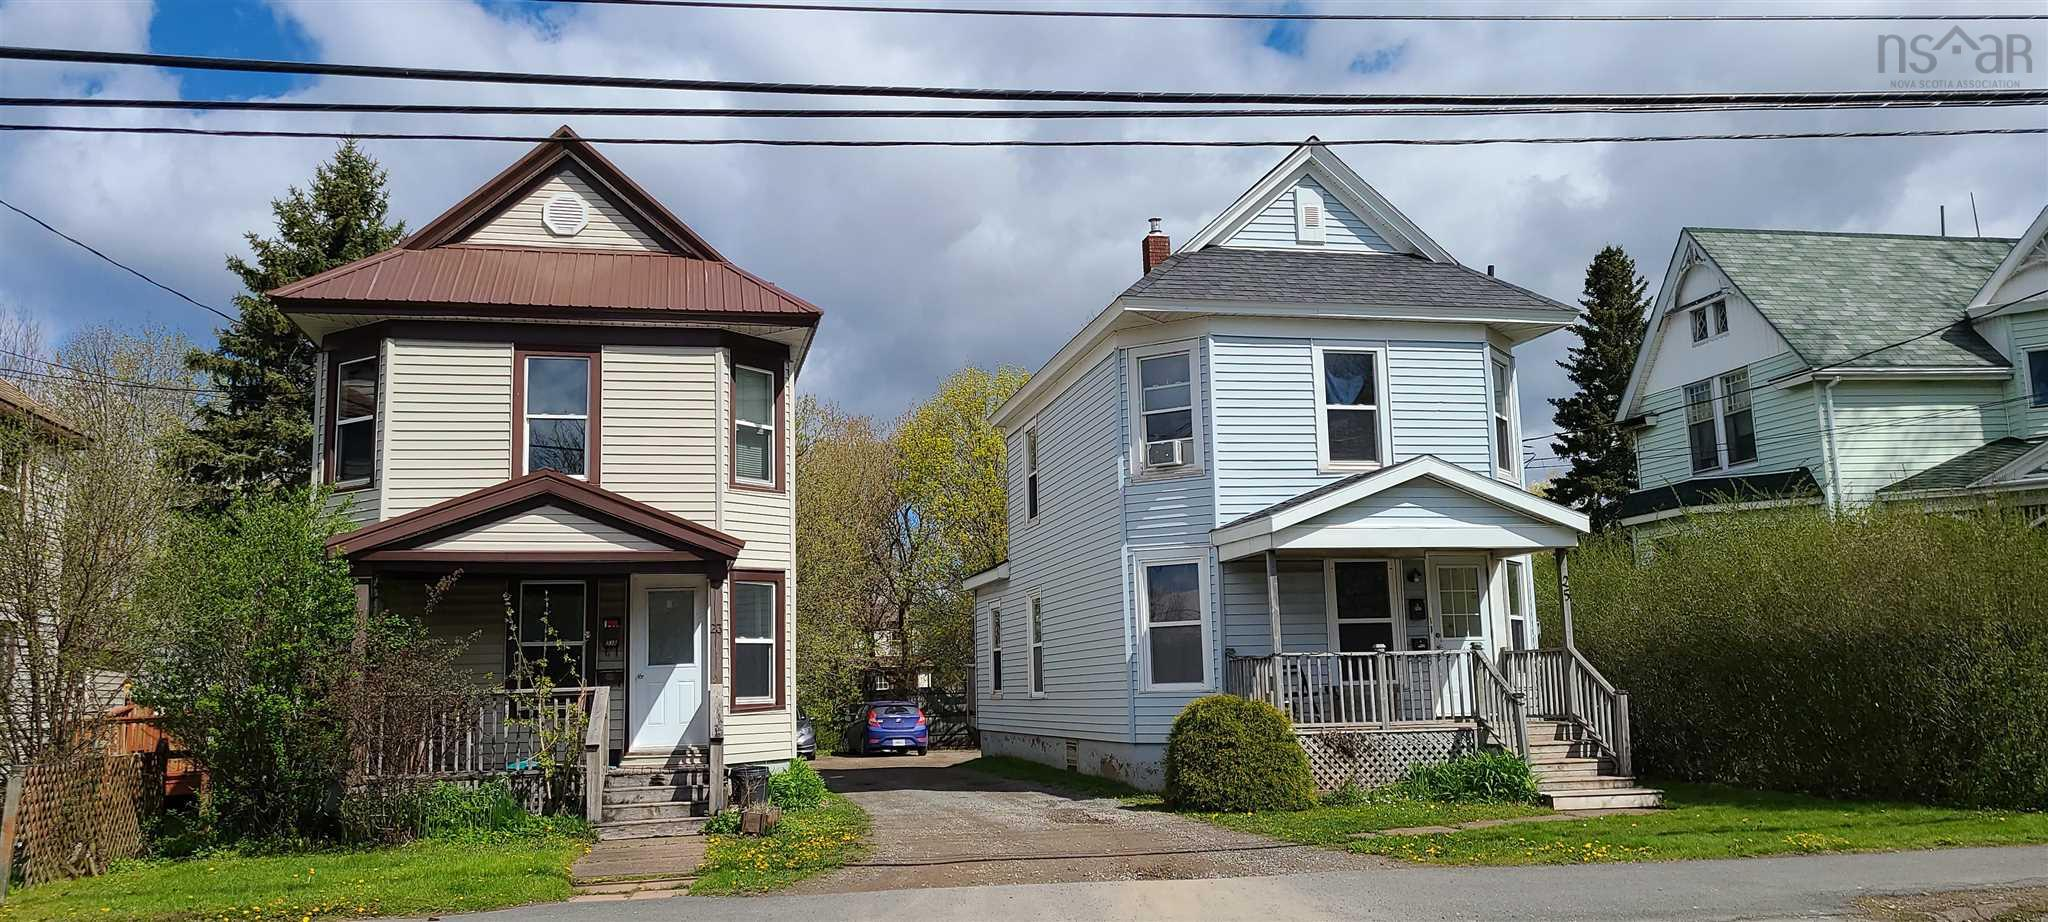 23 COLLEGE Road, Bible Hill, NS B2N 2P2, ,Multi-unit,For Sale,23 COLLEGE Road,202111793